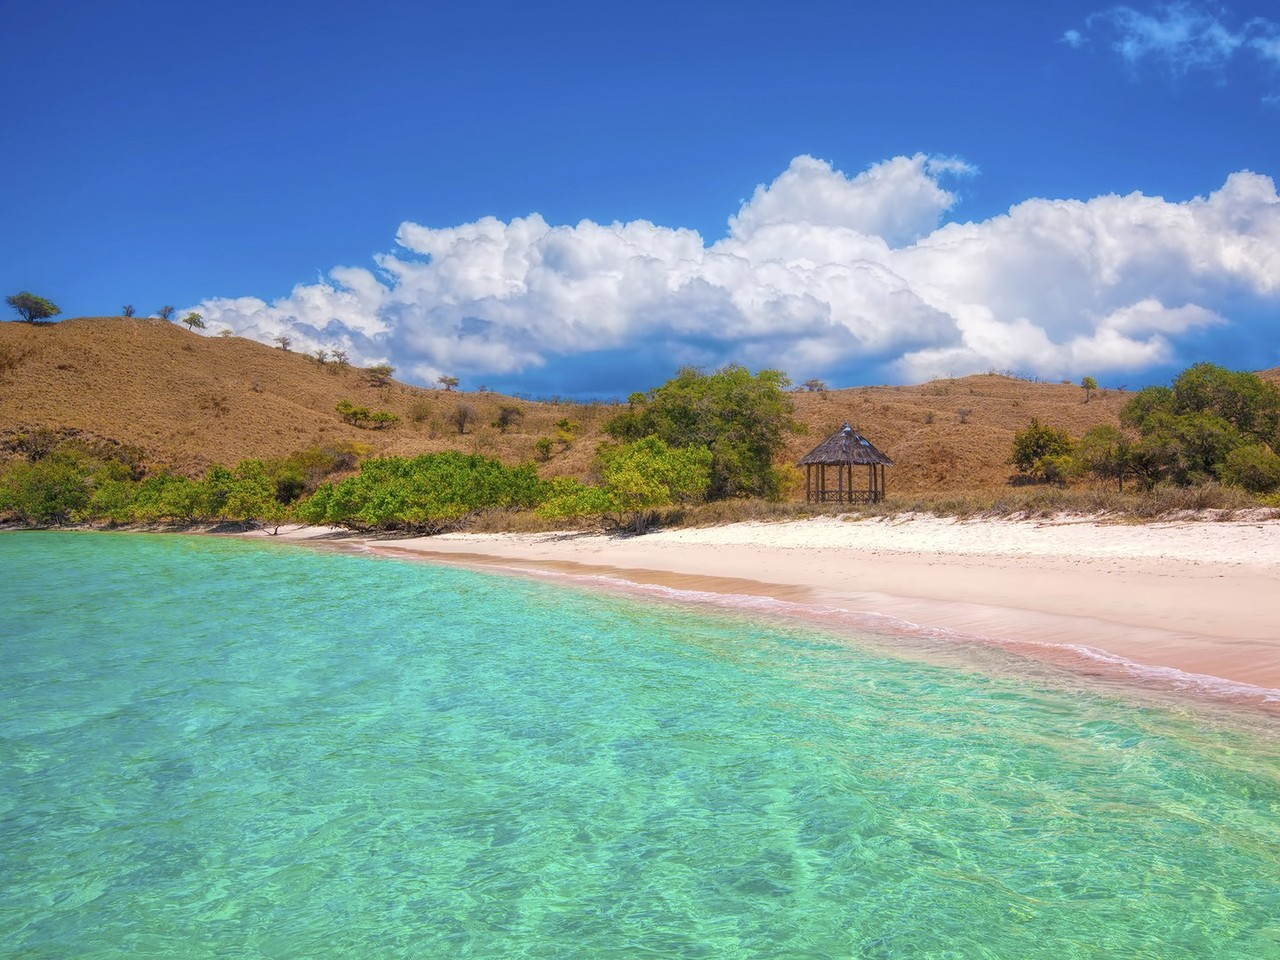 pink-beaches-komodo-beach-cr-getty-451339933.jpg